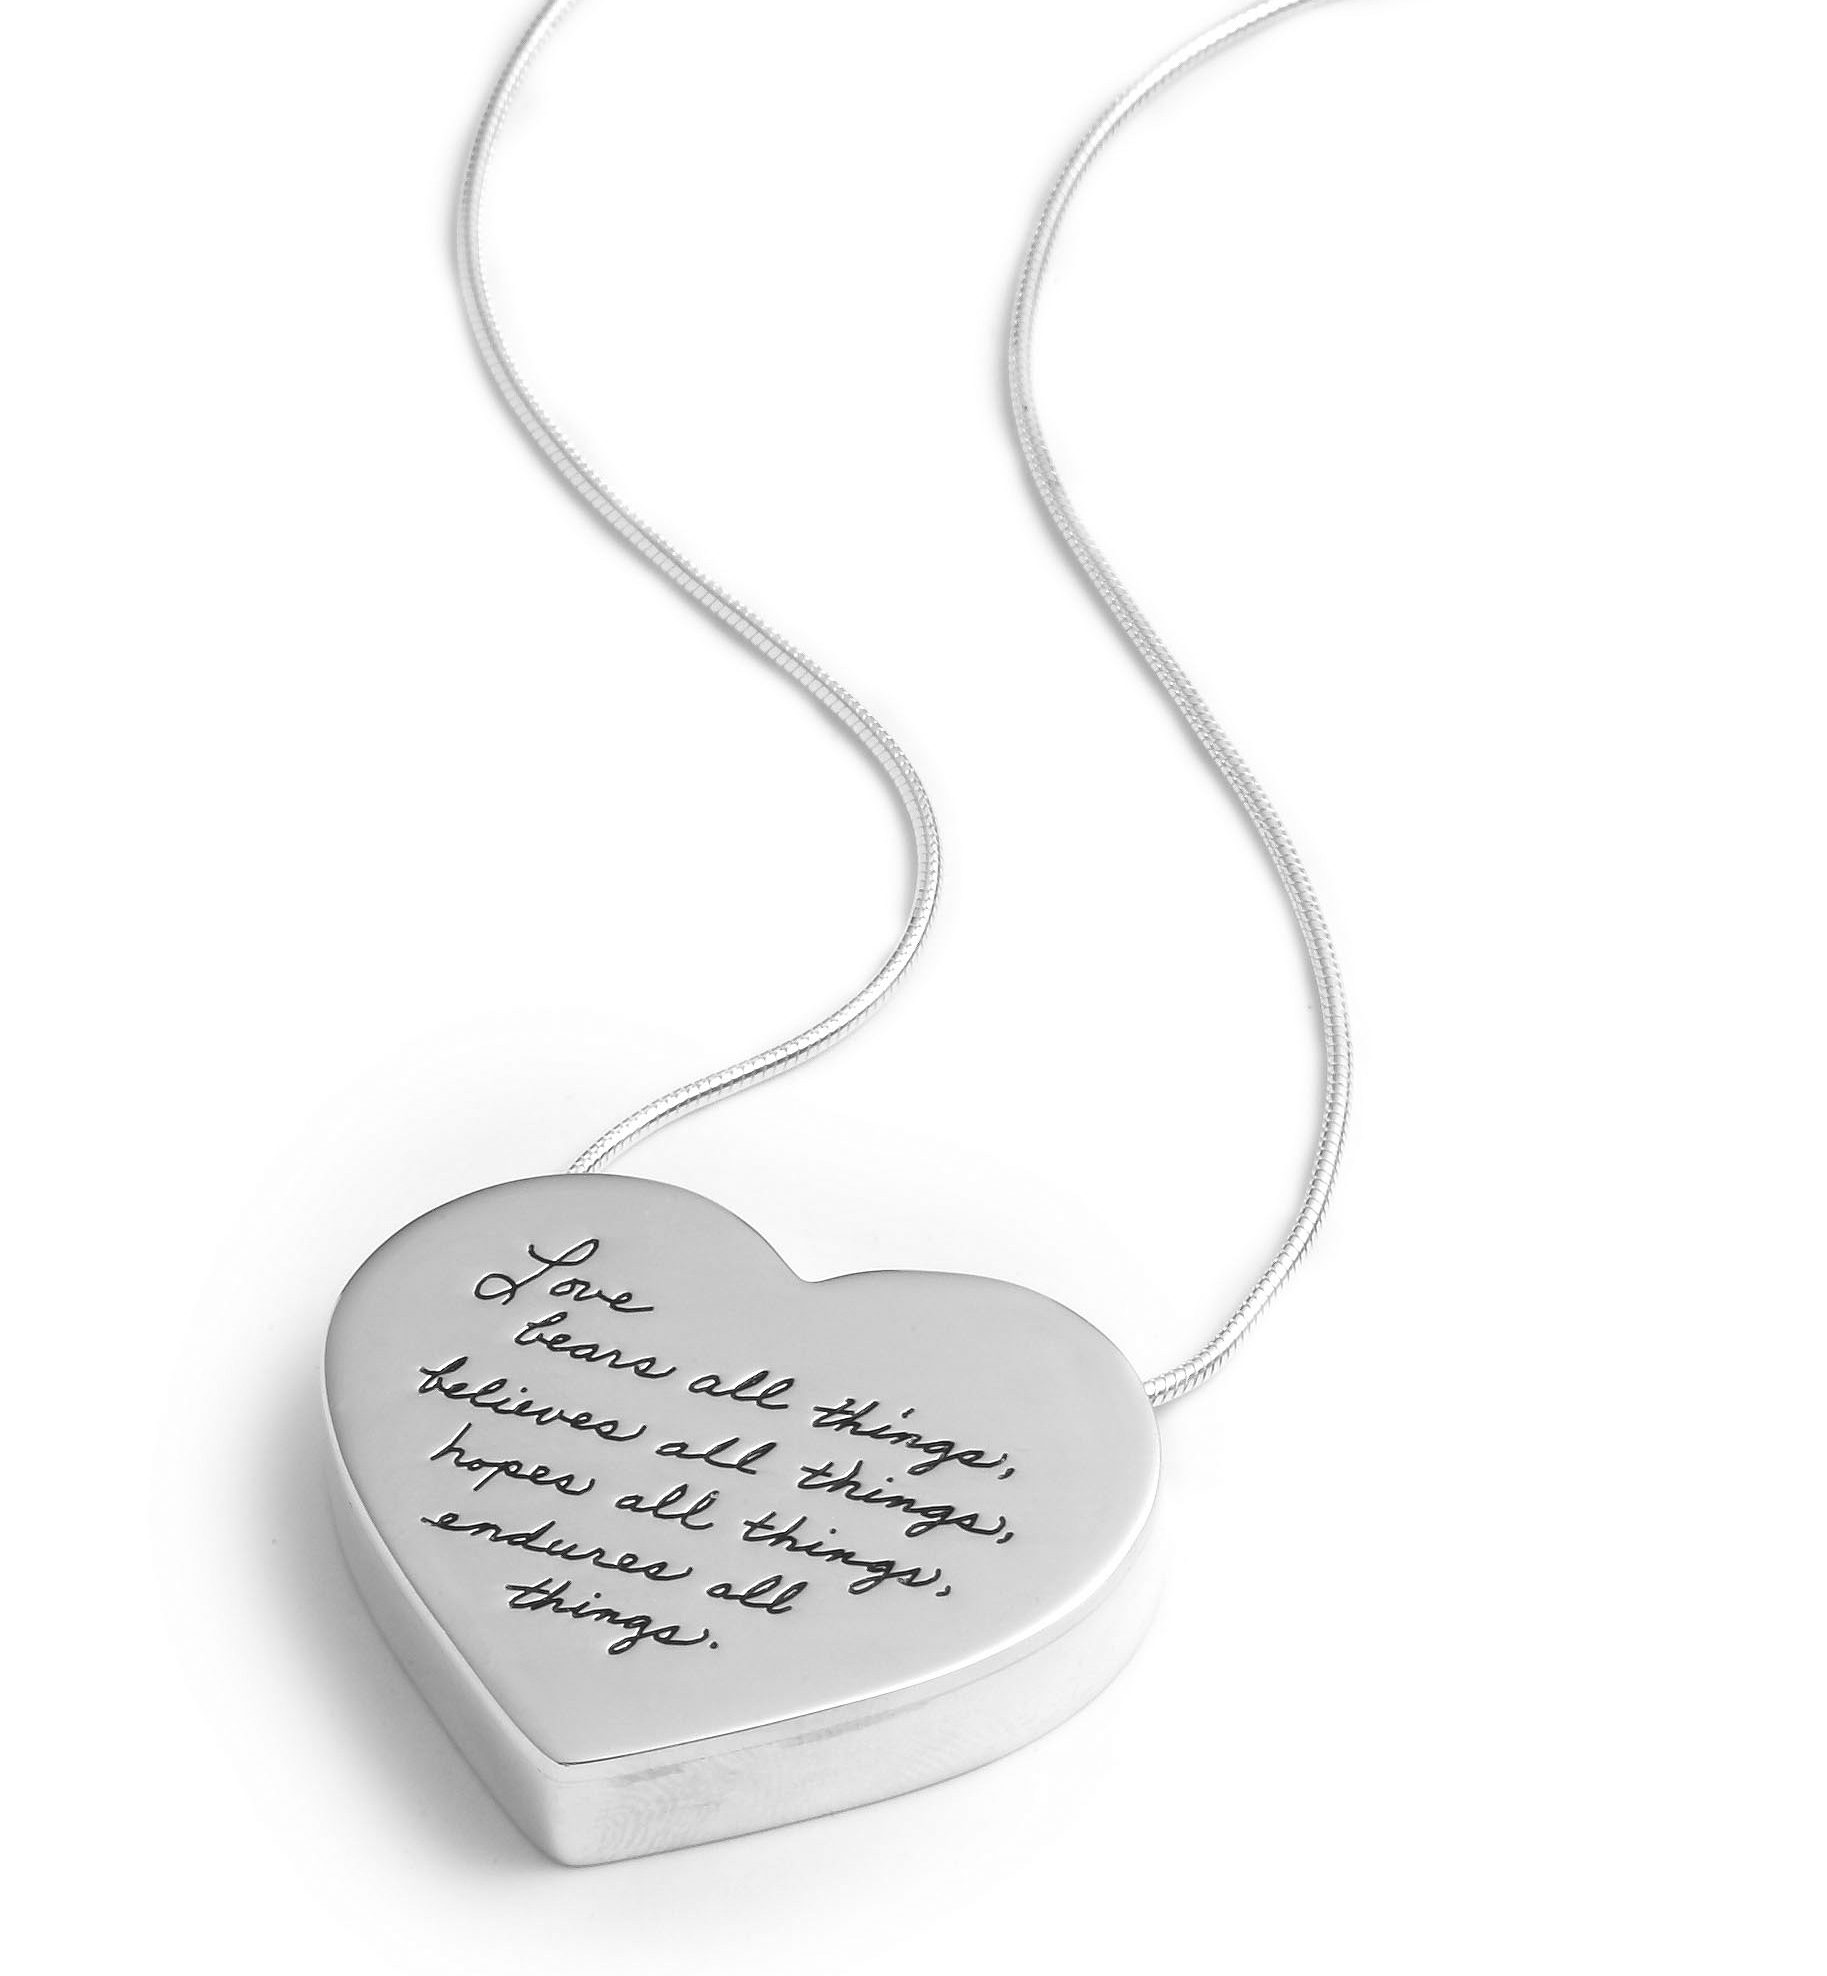 Inspirational sterling silver three-dimentional heart pendant with Engraved Quote: Love bears all things, believes all things, hopes all things, endures all things. -Corinthians